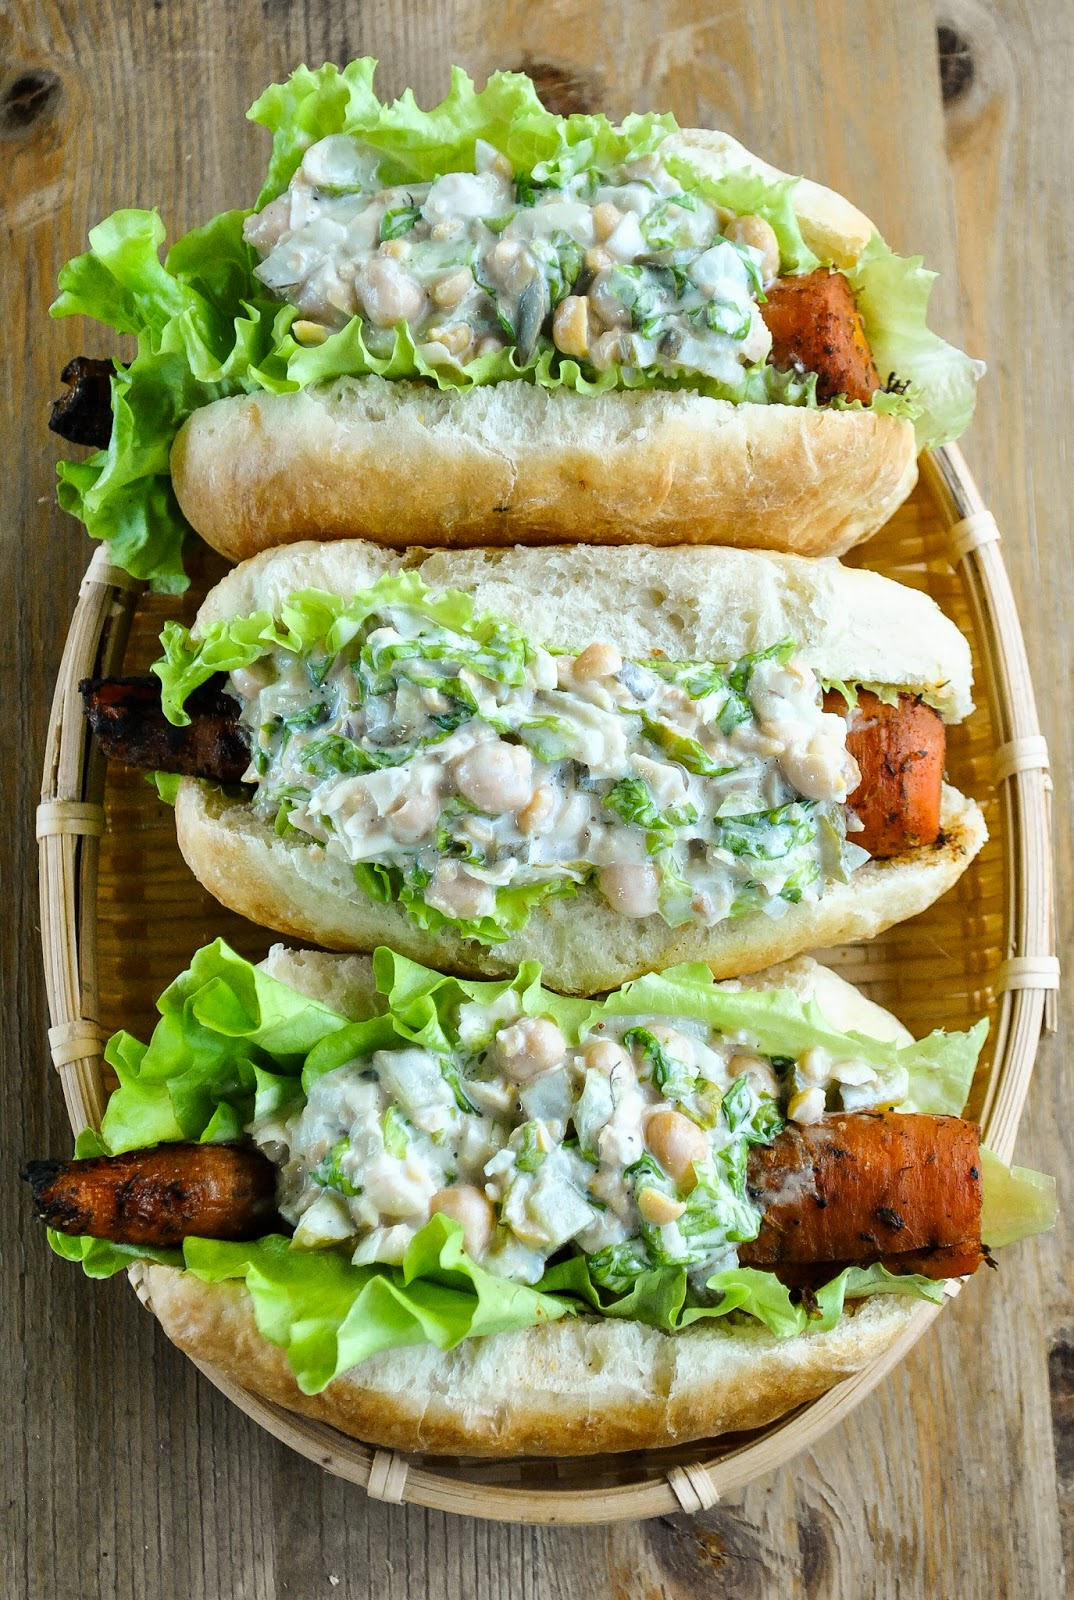 Smoky barbecue carrot hot dogs with creamy chickpea salad for Bar food vegetarian